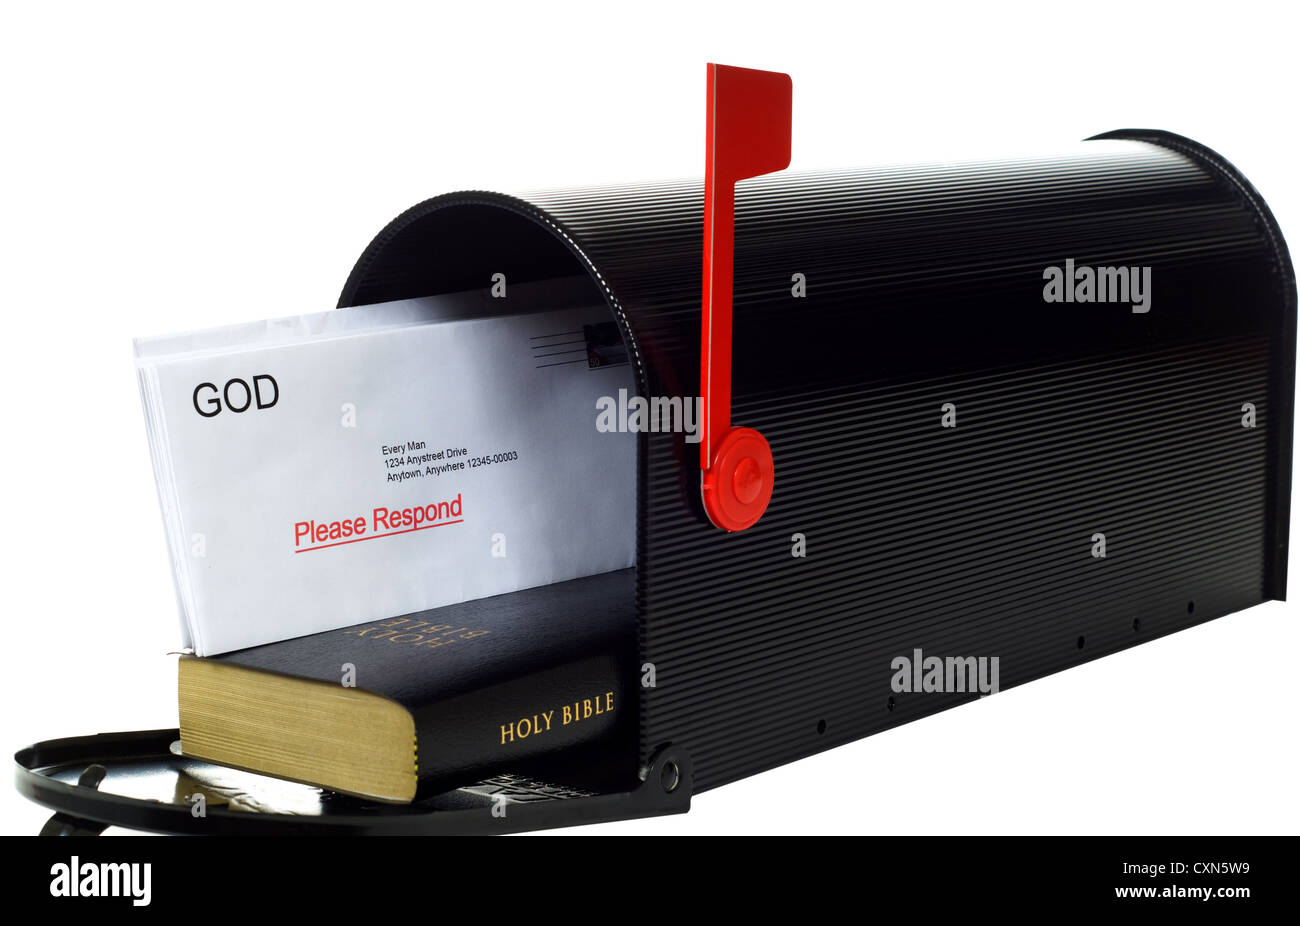 Black mailbox with Bible and a letter from God showing Stock